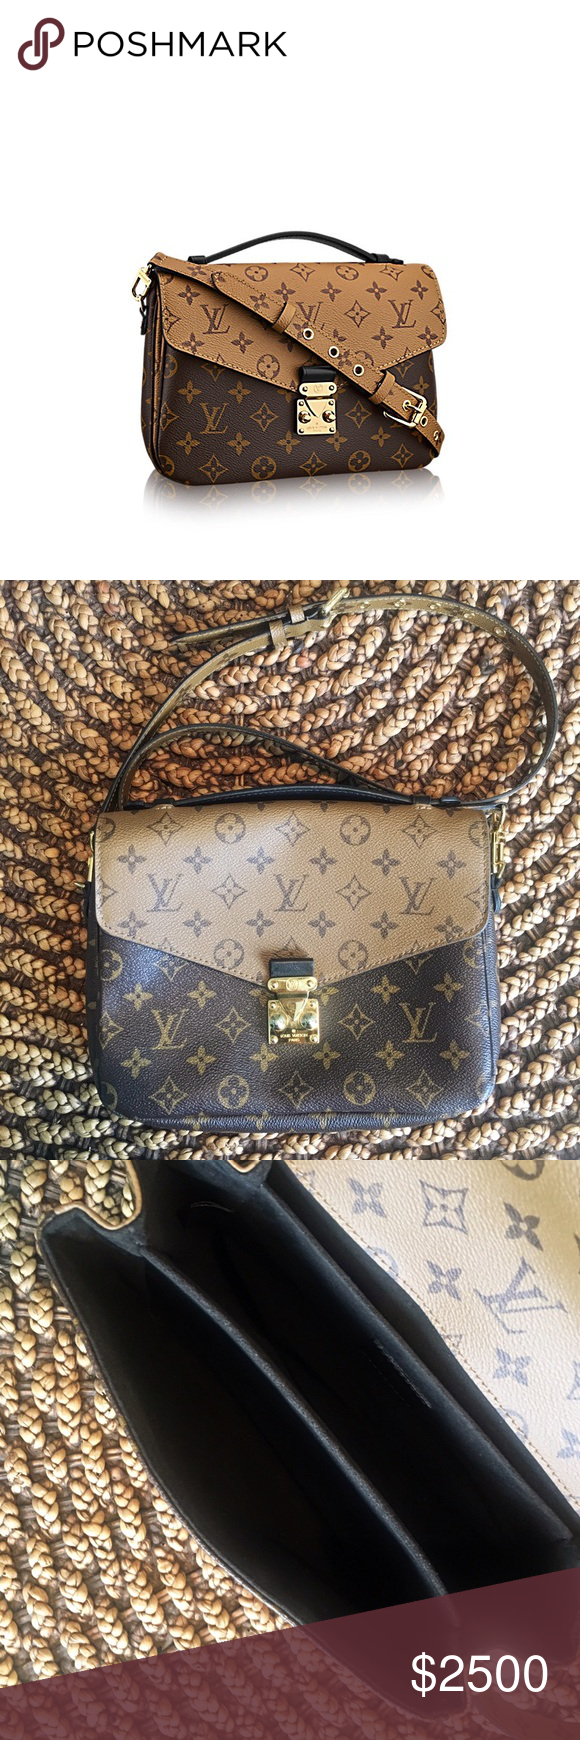 e0f729b4d9dc 100% Auth LV Reverse Monogram Pochette Metis Impossible to find and Limited  Edition